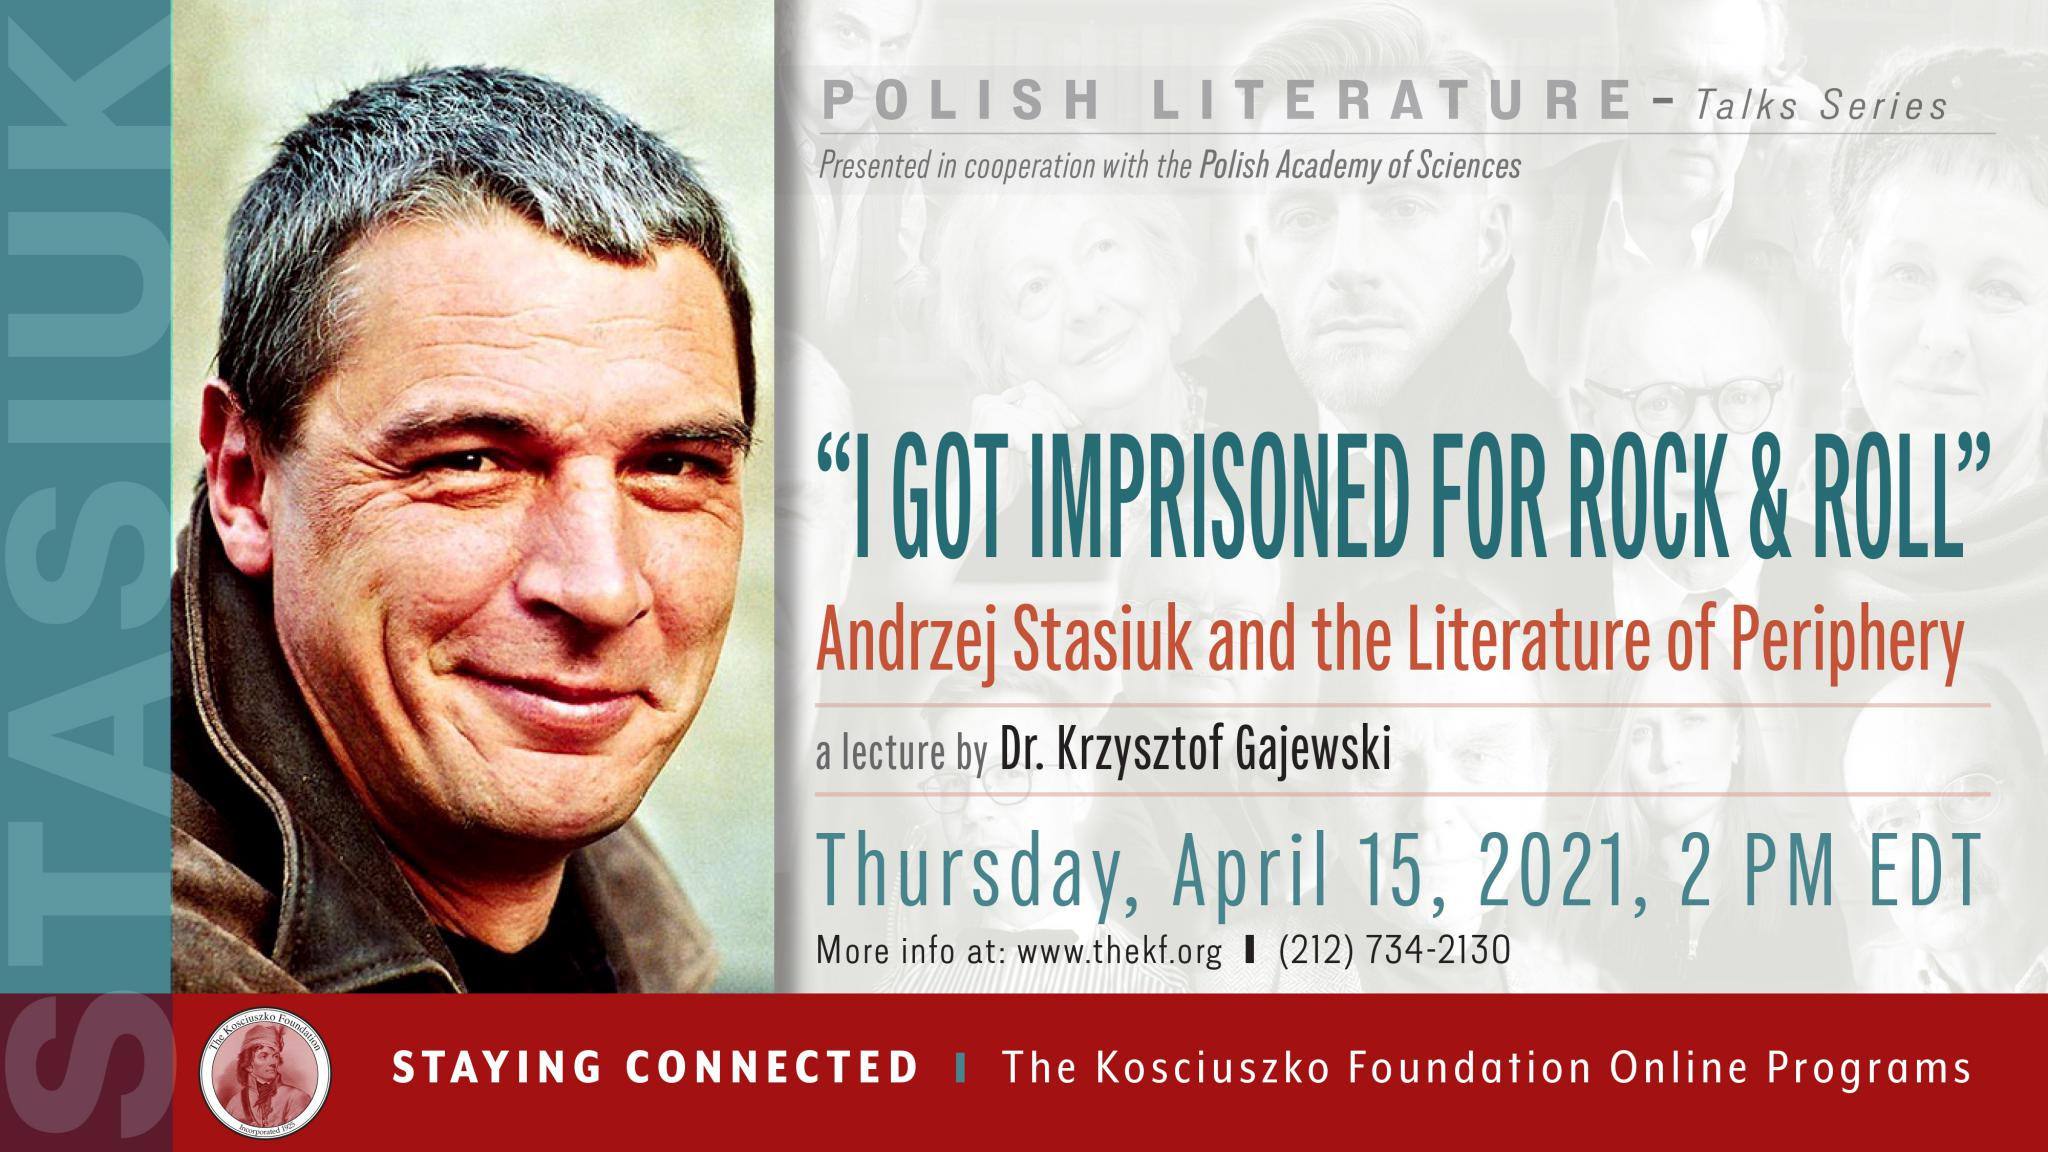 """""""I got imprisoned for rock and roll"""": Andrzej Stasiuk and the Literature of Periphery – A lecture by Dr. Krzysztof Gajewski"""